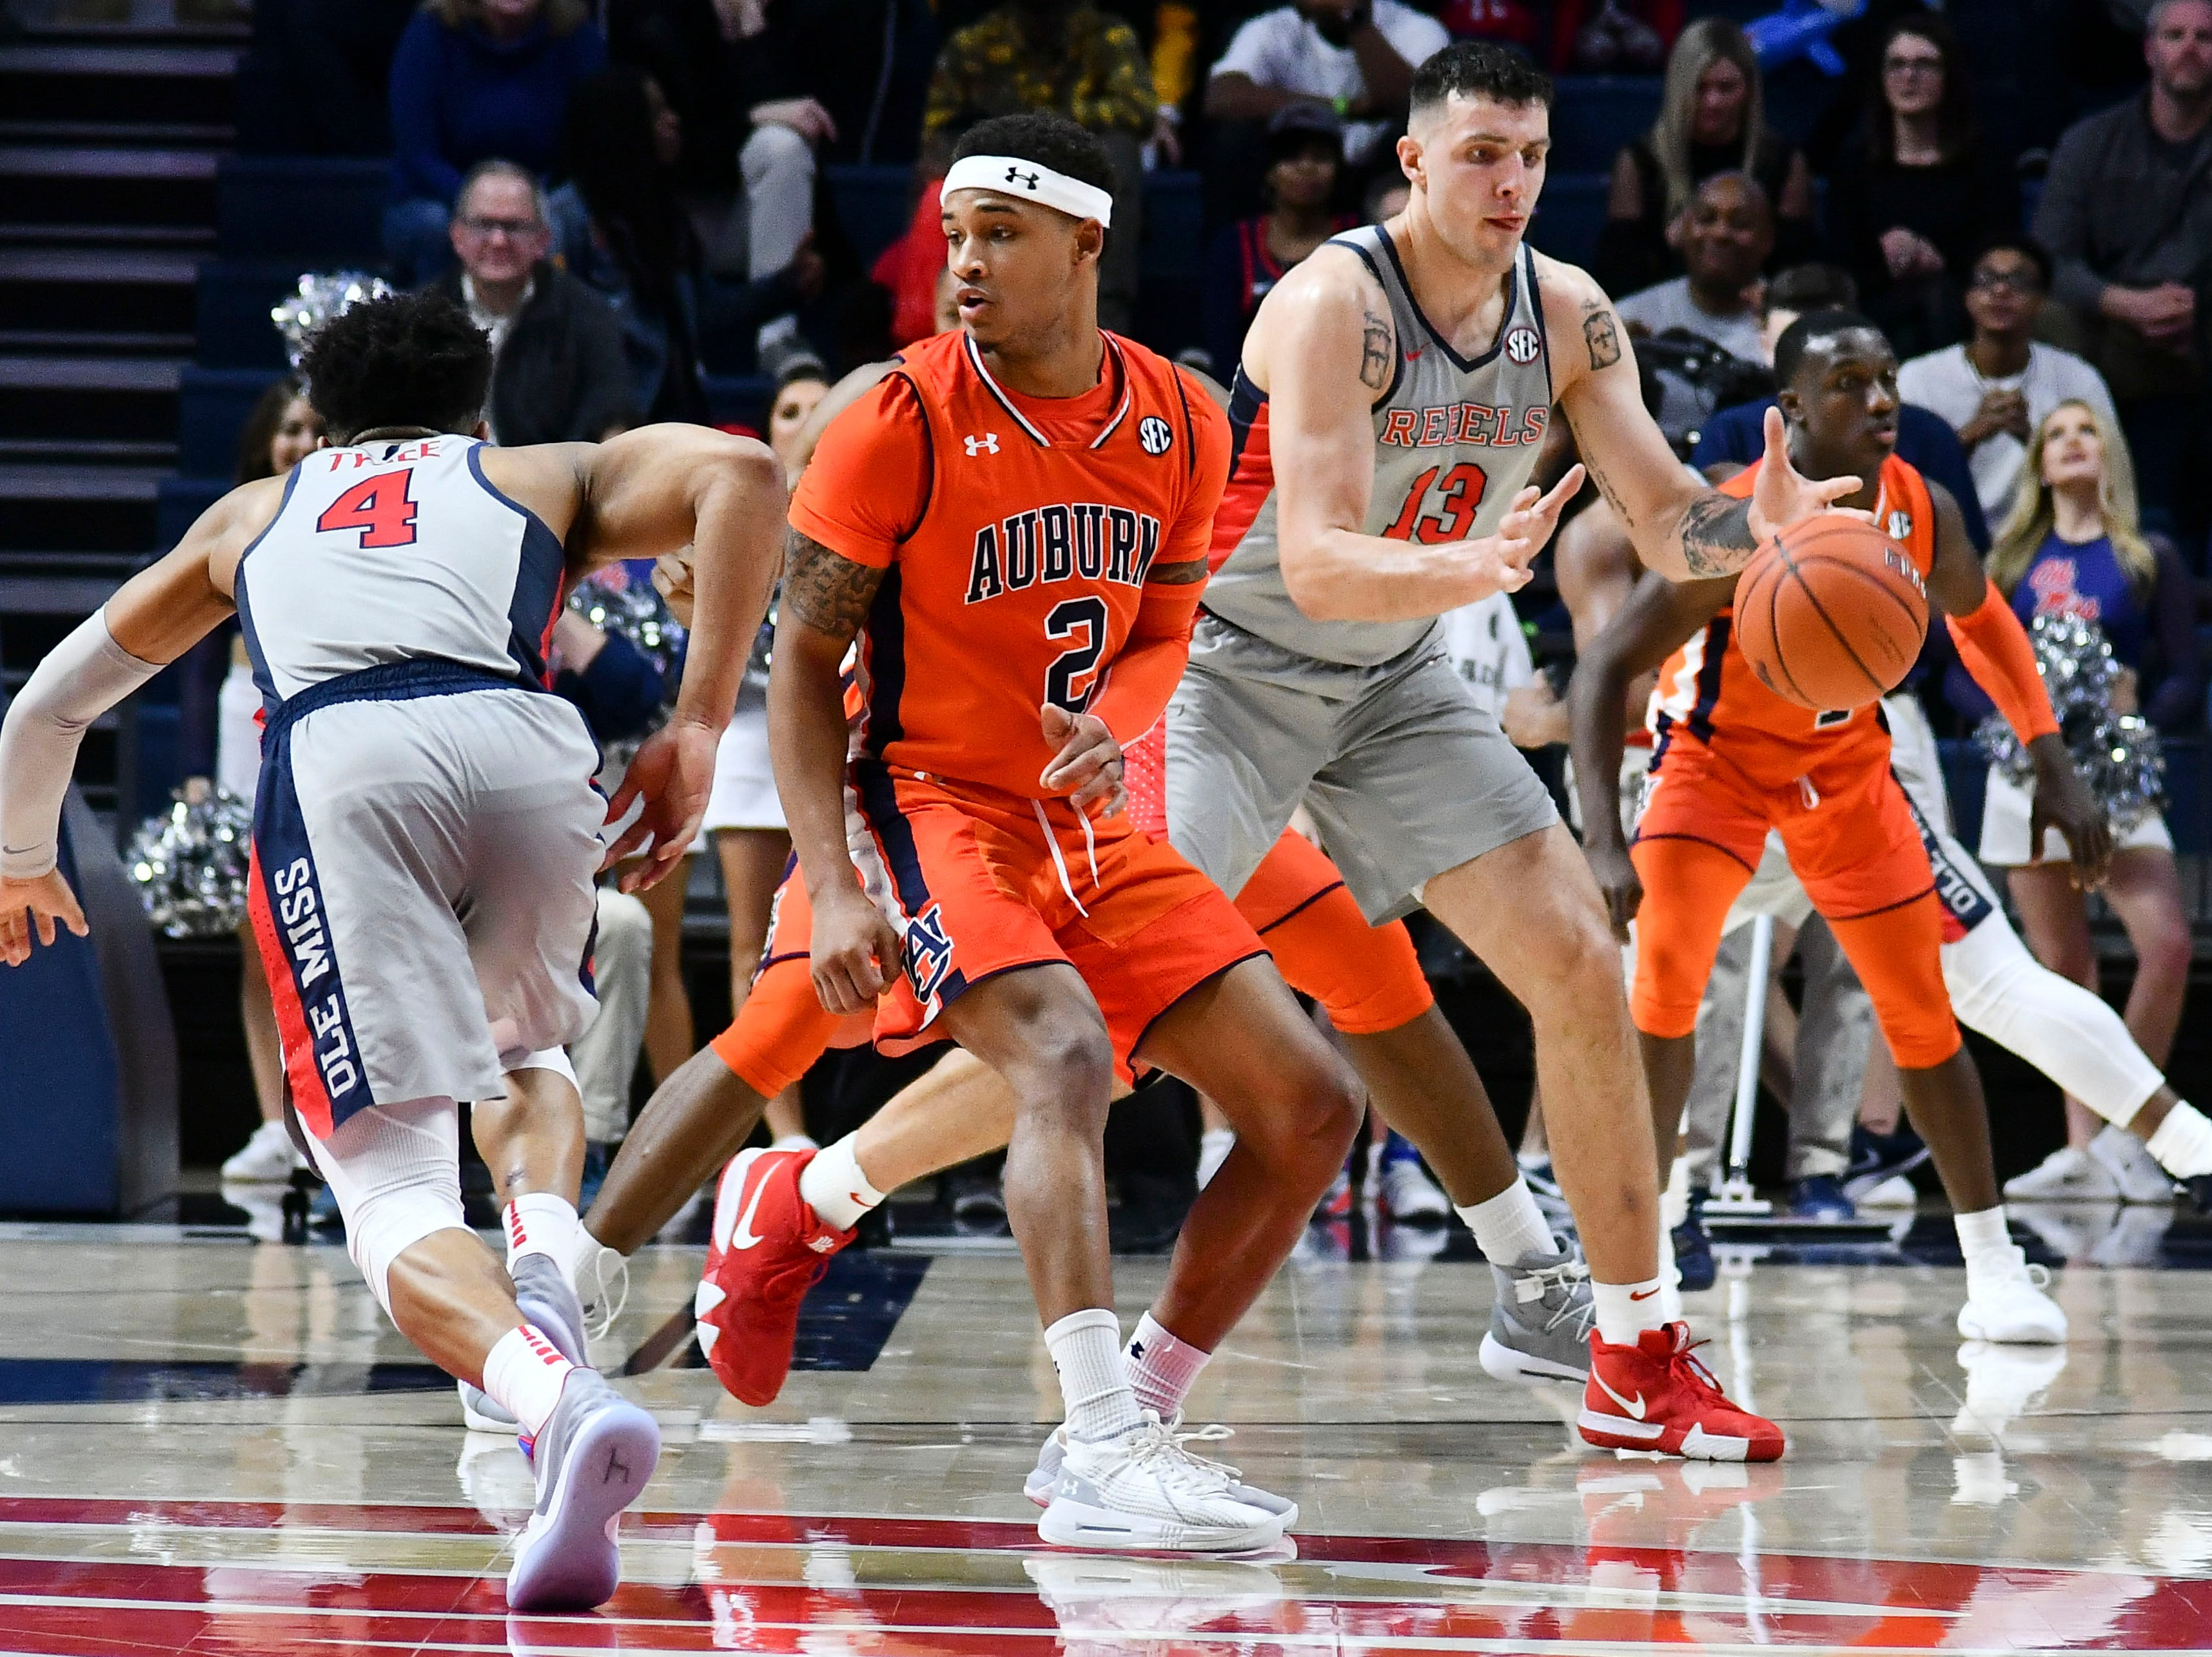 Jan 9, 2019; Oxford, MS, USA; Mississippi Rebels center Dominik Olejniczak (13) catches a pass from guard Breein Tyree (4) past Auburn Tigers guard Bryce Brown (2) during the first quarter at The Pavilion at Ole Miss. Mandatory Credit: Matt Bush-USA TODAY Sports